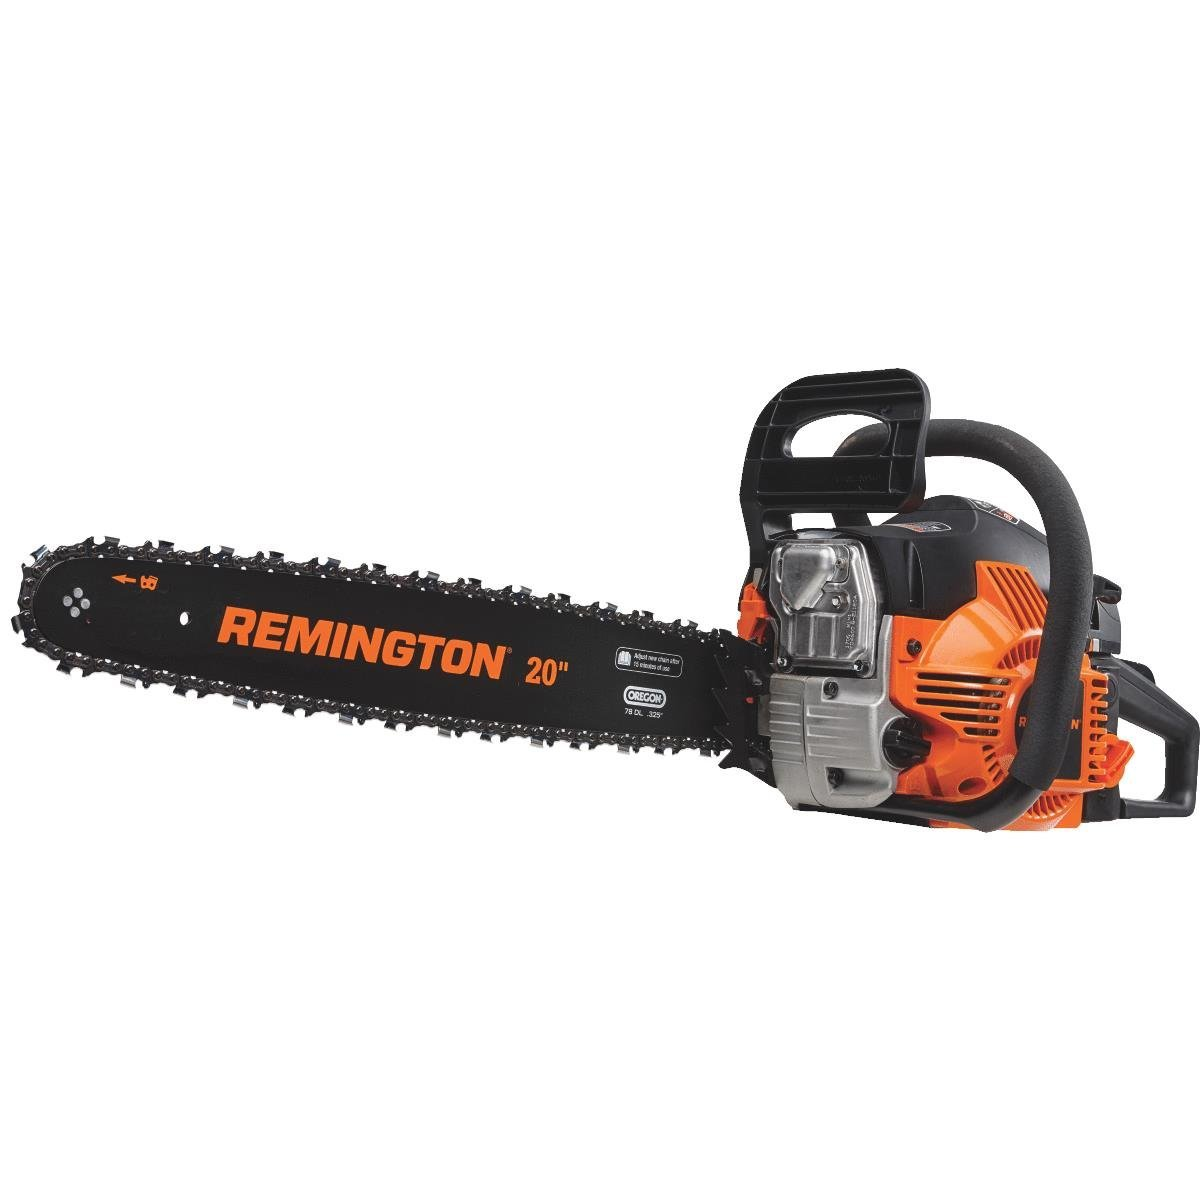 Astonishing Remington Outlaw Rm4620 20 In 46 Cc Gas Chainsaw 41Dy462S983 Do Wiring Cloud Rometaidewilluminateatxorg